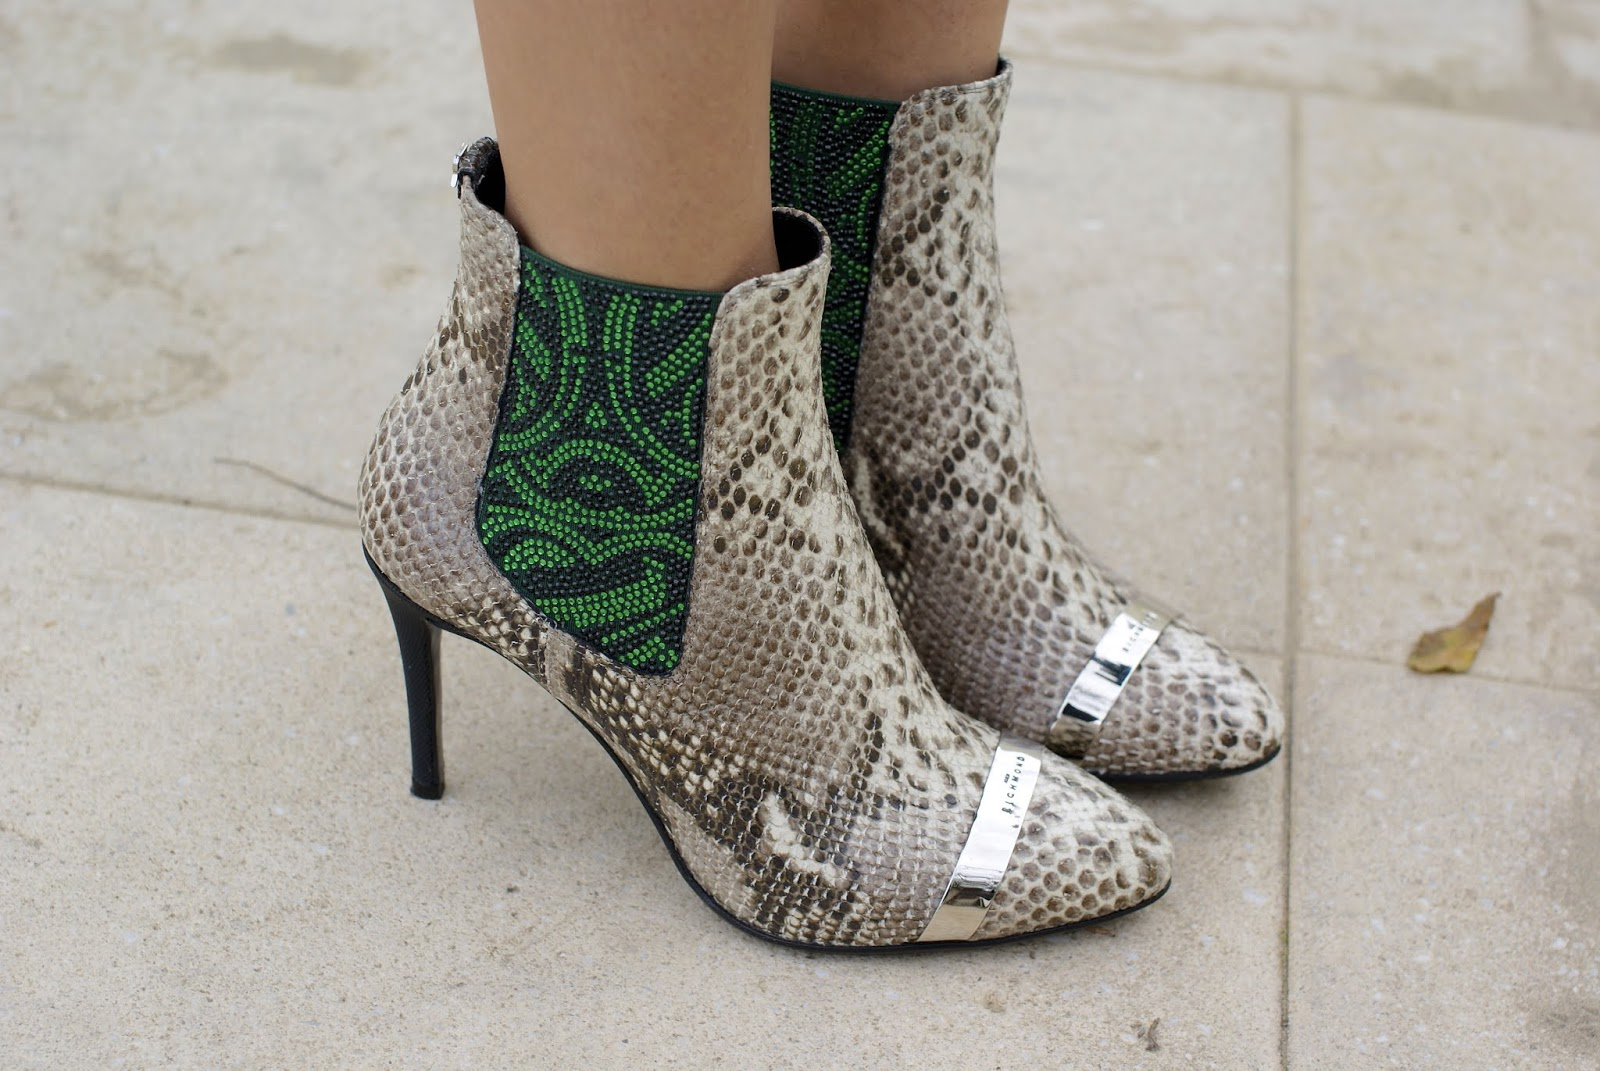 Snakeskin python ankle boots, John Richmond shoes on Fashion and Cookies fashion blog